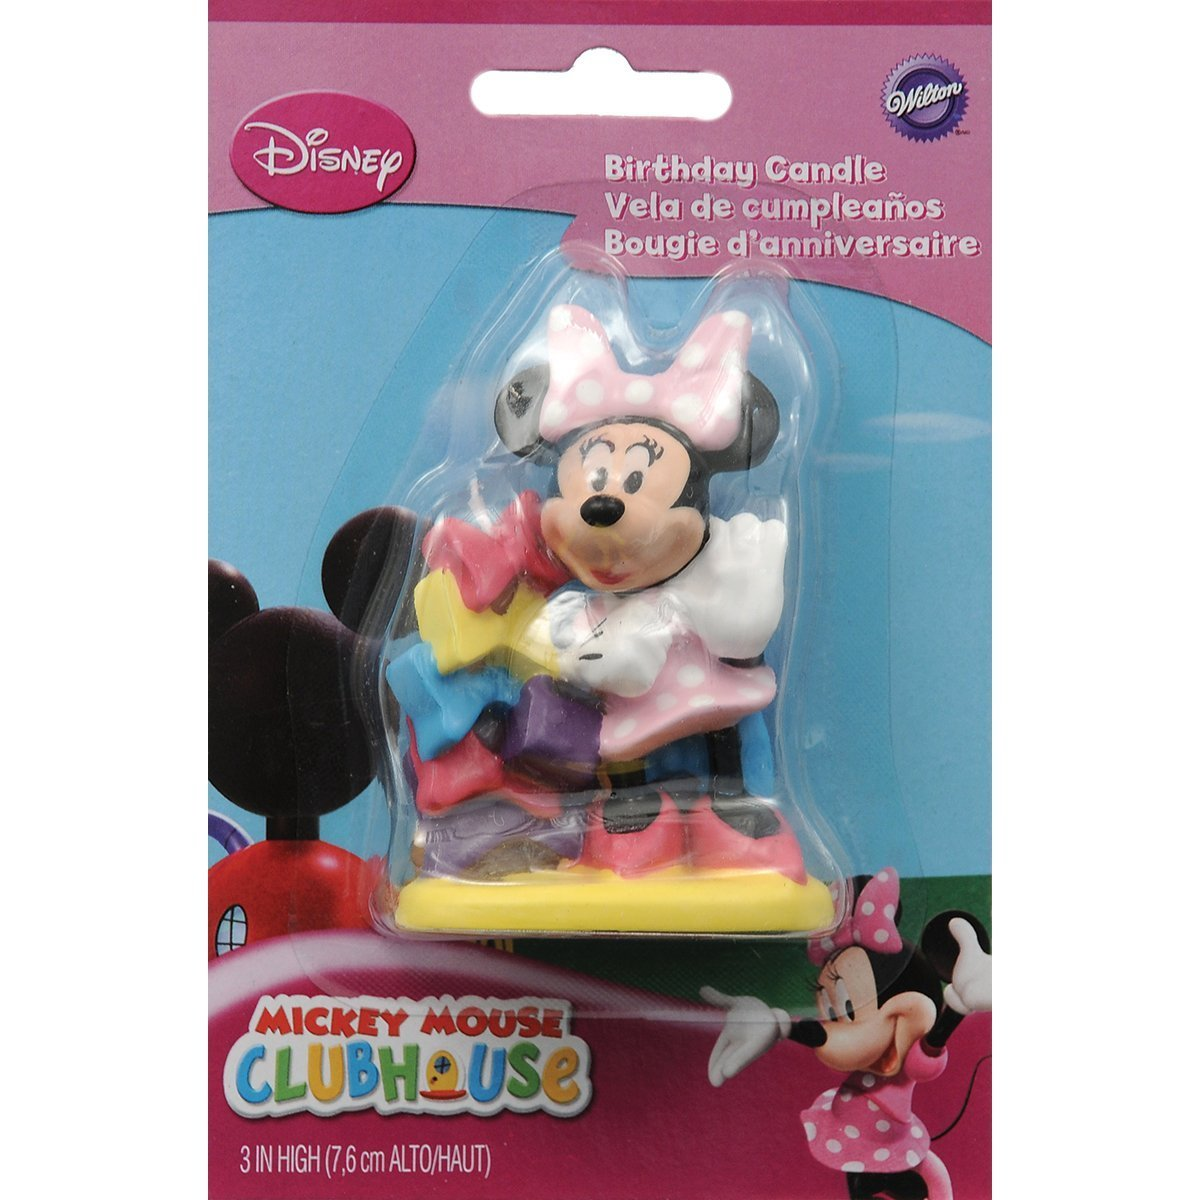 Wilton Disney Minnie Licensed Birthday Candle